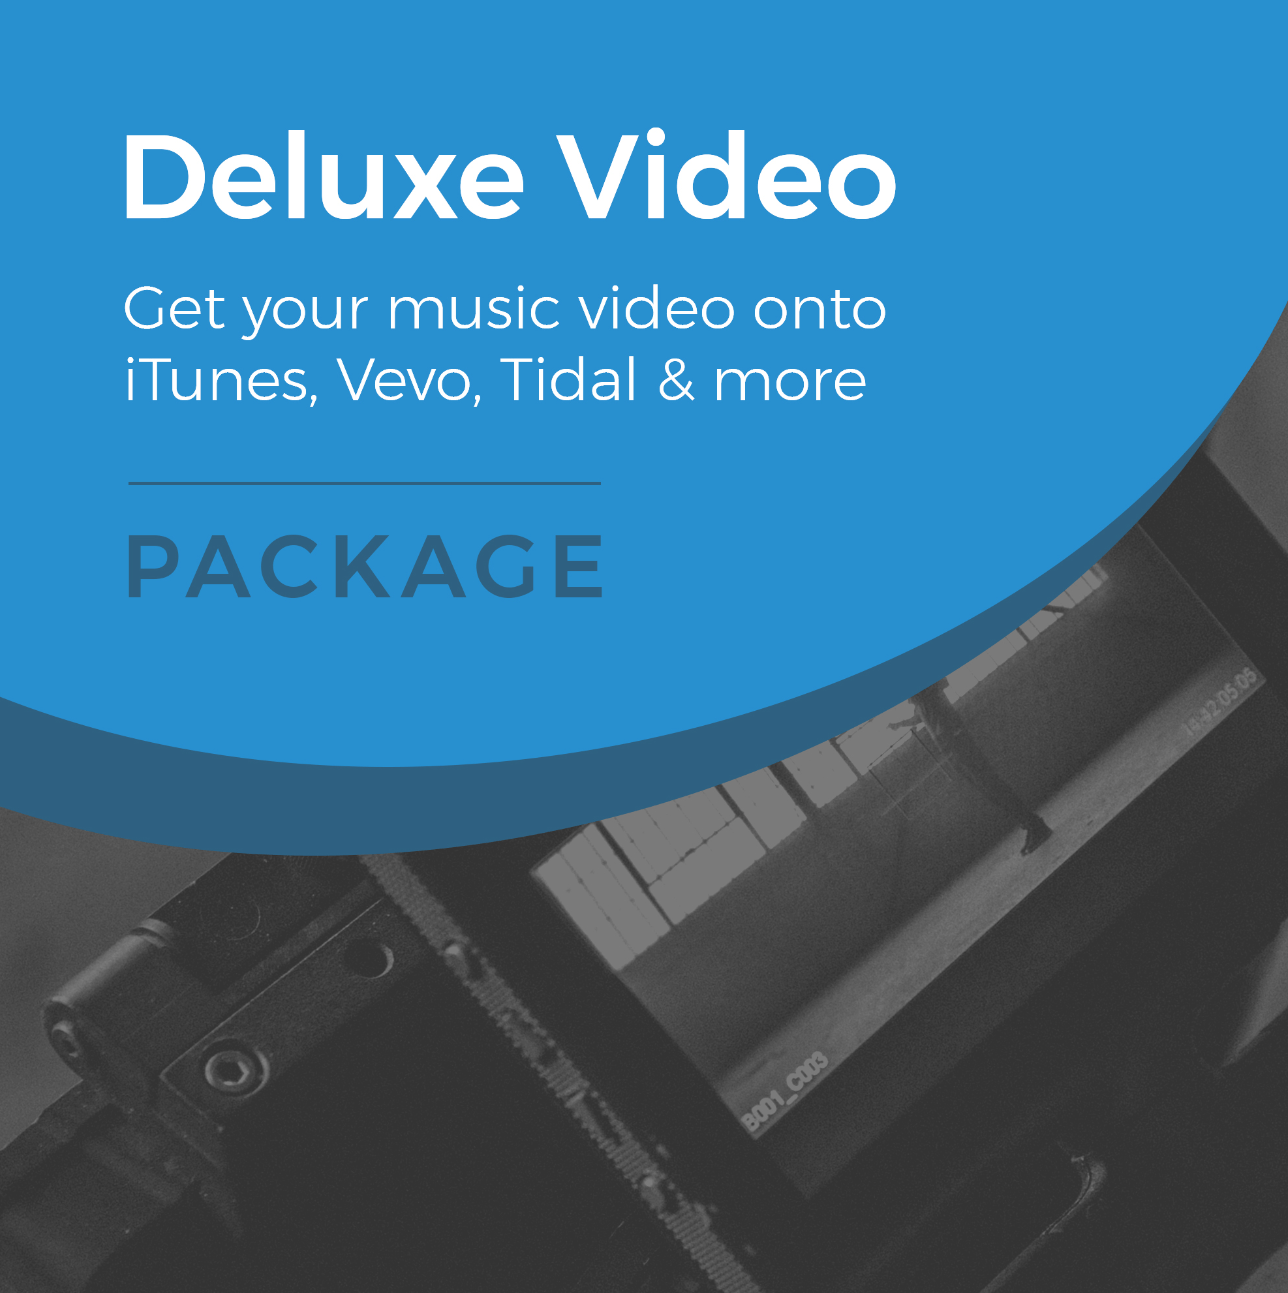 Deluxe video distribution